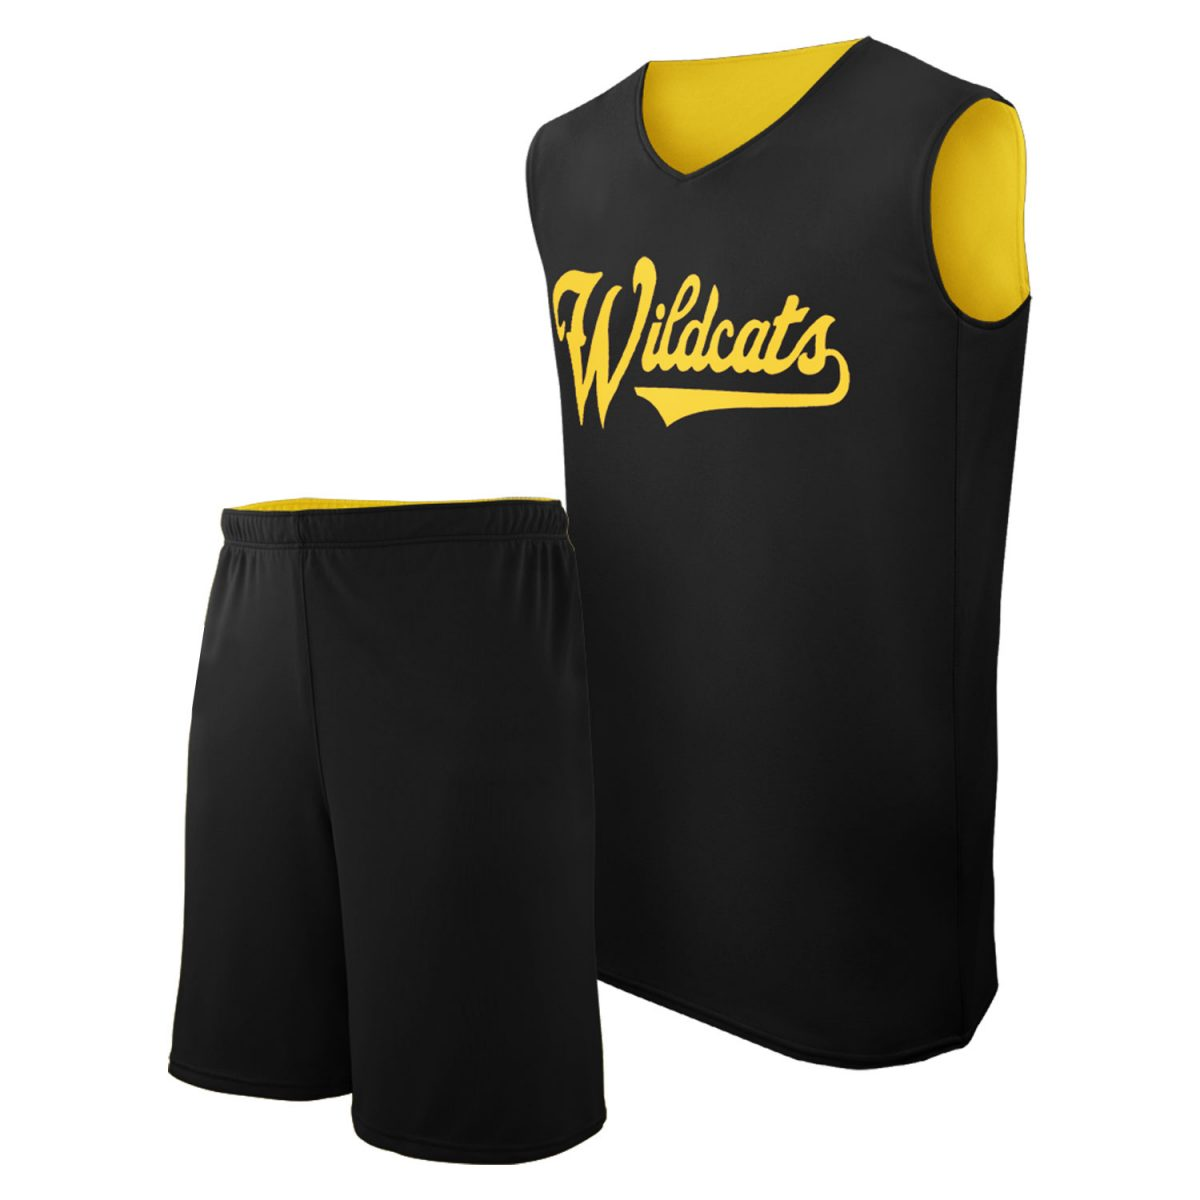 Boys Basketball Uniforms Manufacturers in Thiruvananthapuram